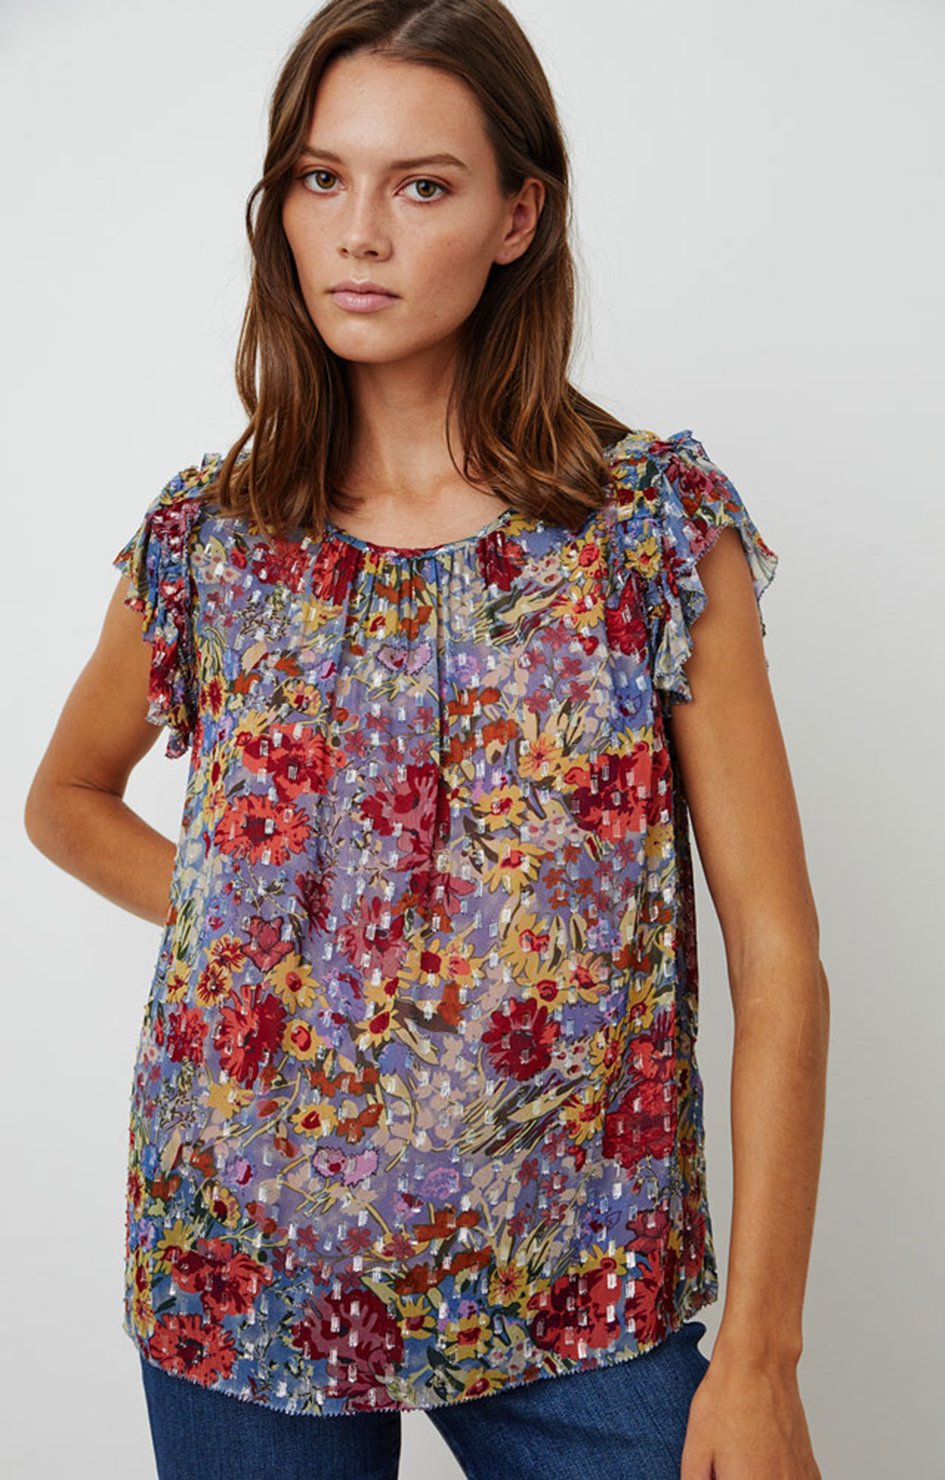 Keiara Top - Multi